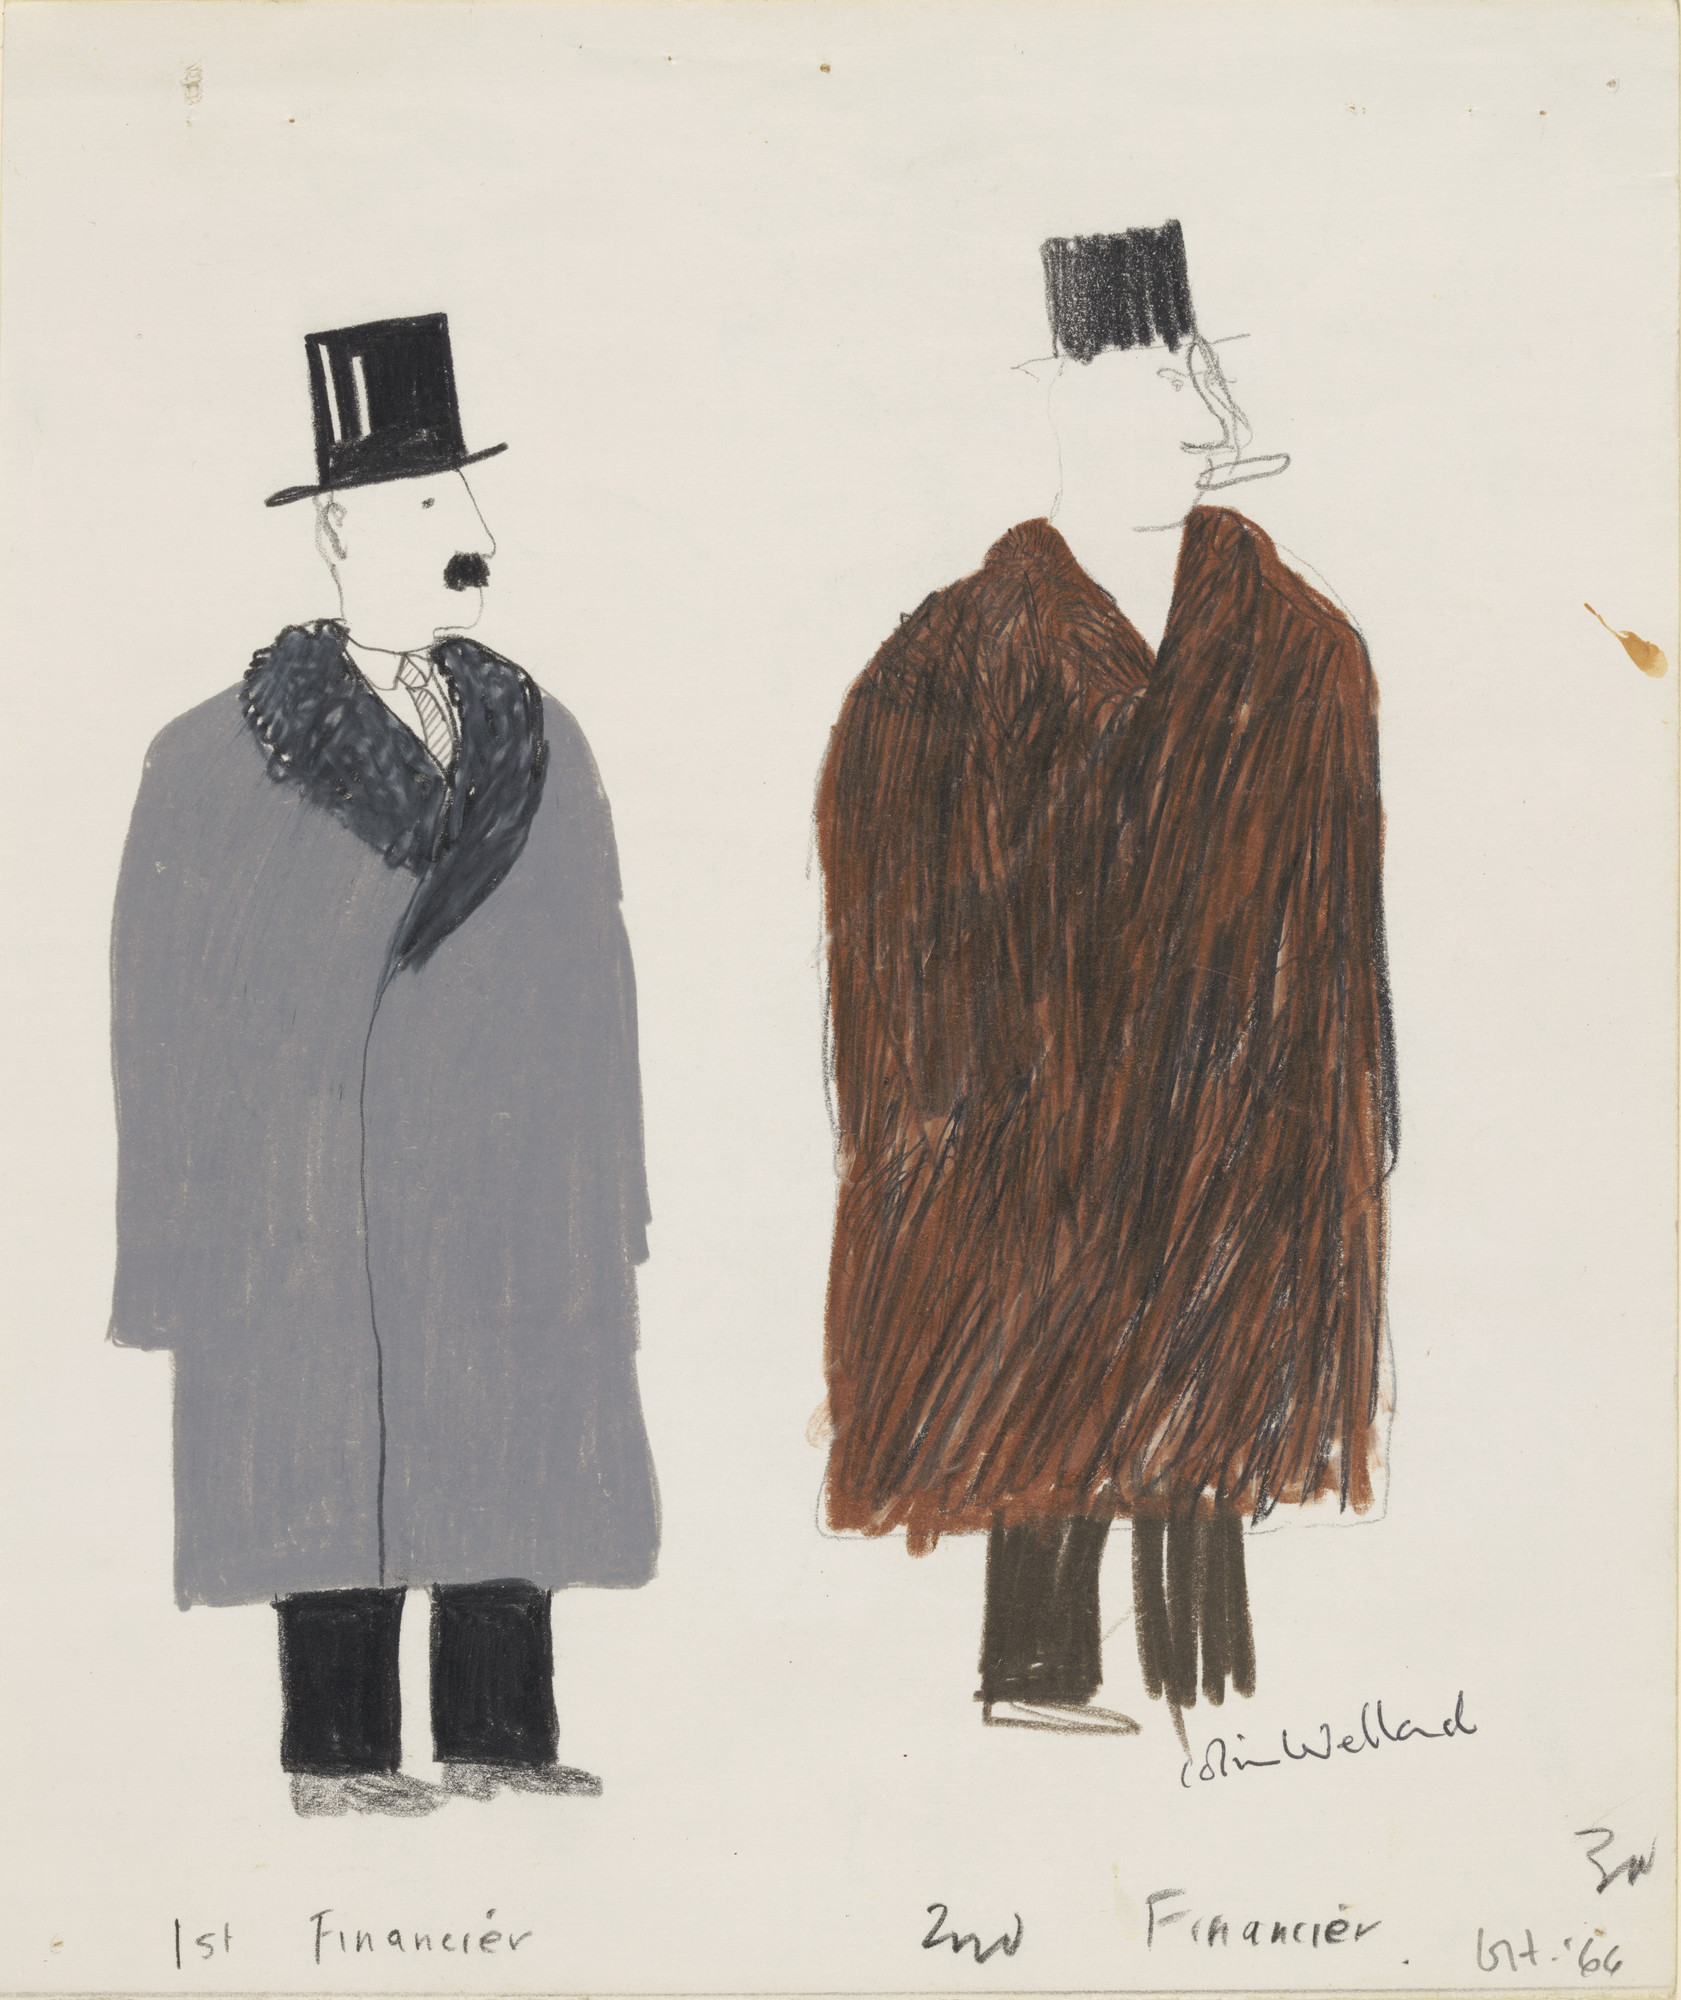 David Hockney. 1st Financier 2nd Financier. Costume designs for the play Ubu Roi. 1966